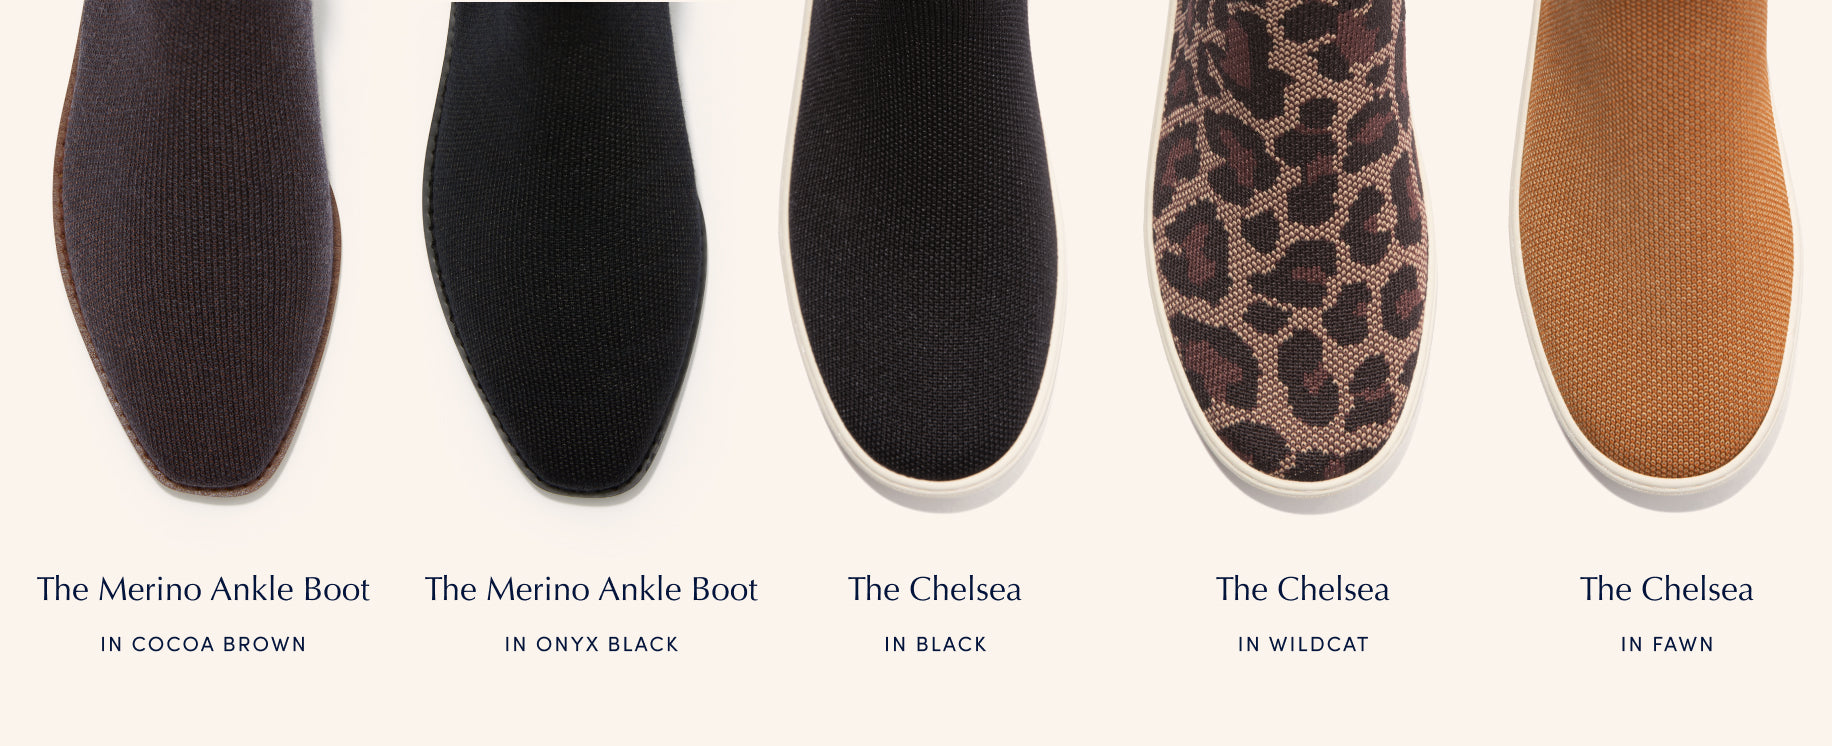 Infographic showing the toe areas of an assortment of The Merino Ankle Boot and The Chelsea styles, with each silhouette name beneath.